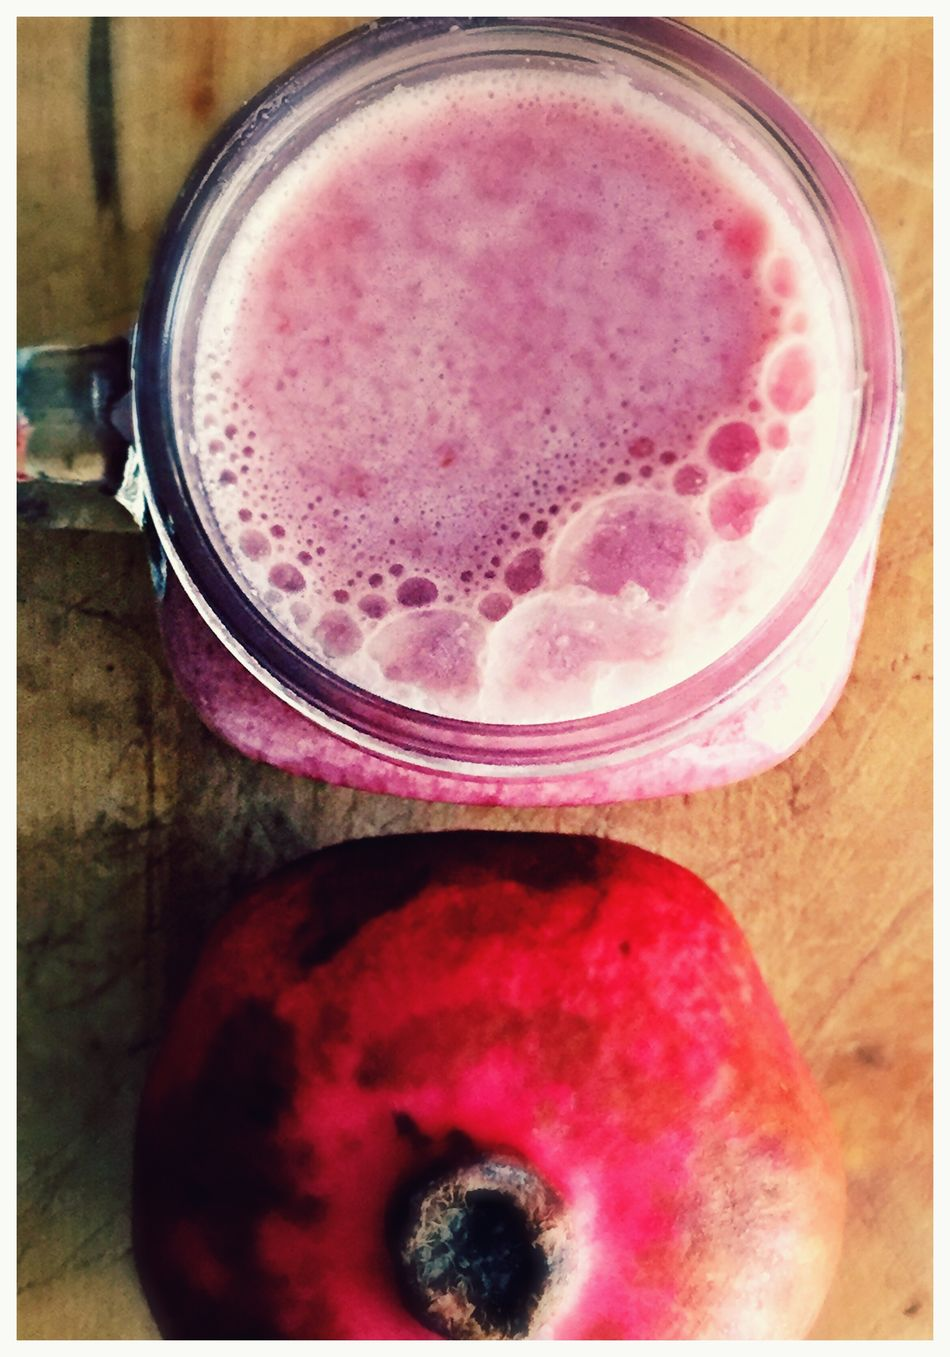 Breakfast Drink Fruit Healthy Eating Freshness Food And Drink Red Pink Color Close-up Refreshment Healthy Lifestyle No People Indoors  Vitamins IPhoneography Handmade For You Close Up Red Food And Drink Lieblingsteil Pomegranate Bubbles Autumn Colors Glass Mug Freshly Squeezed